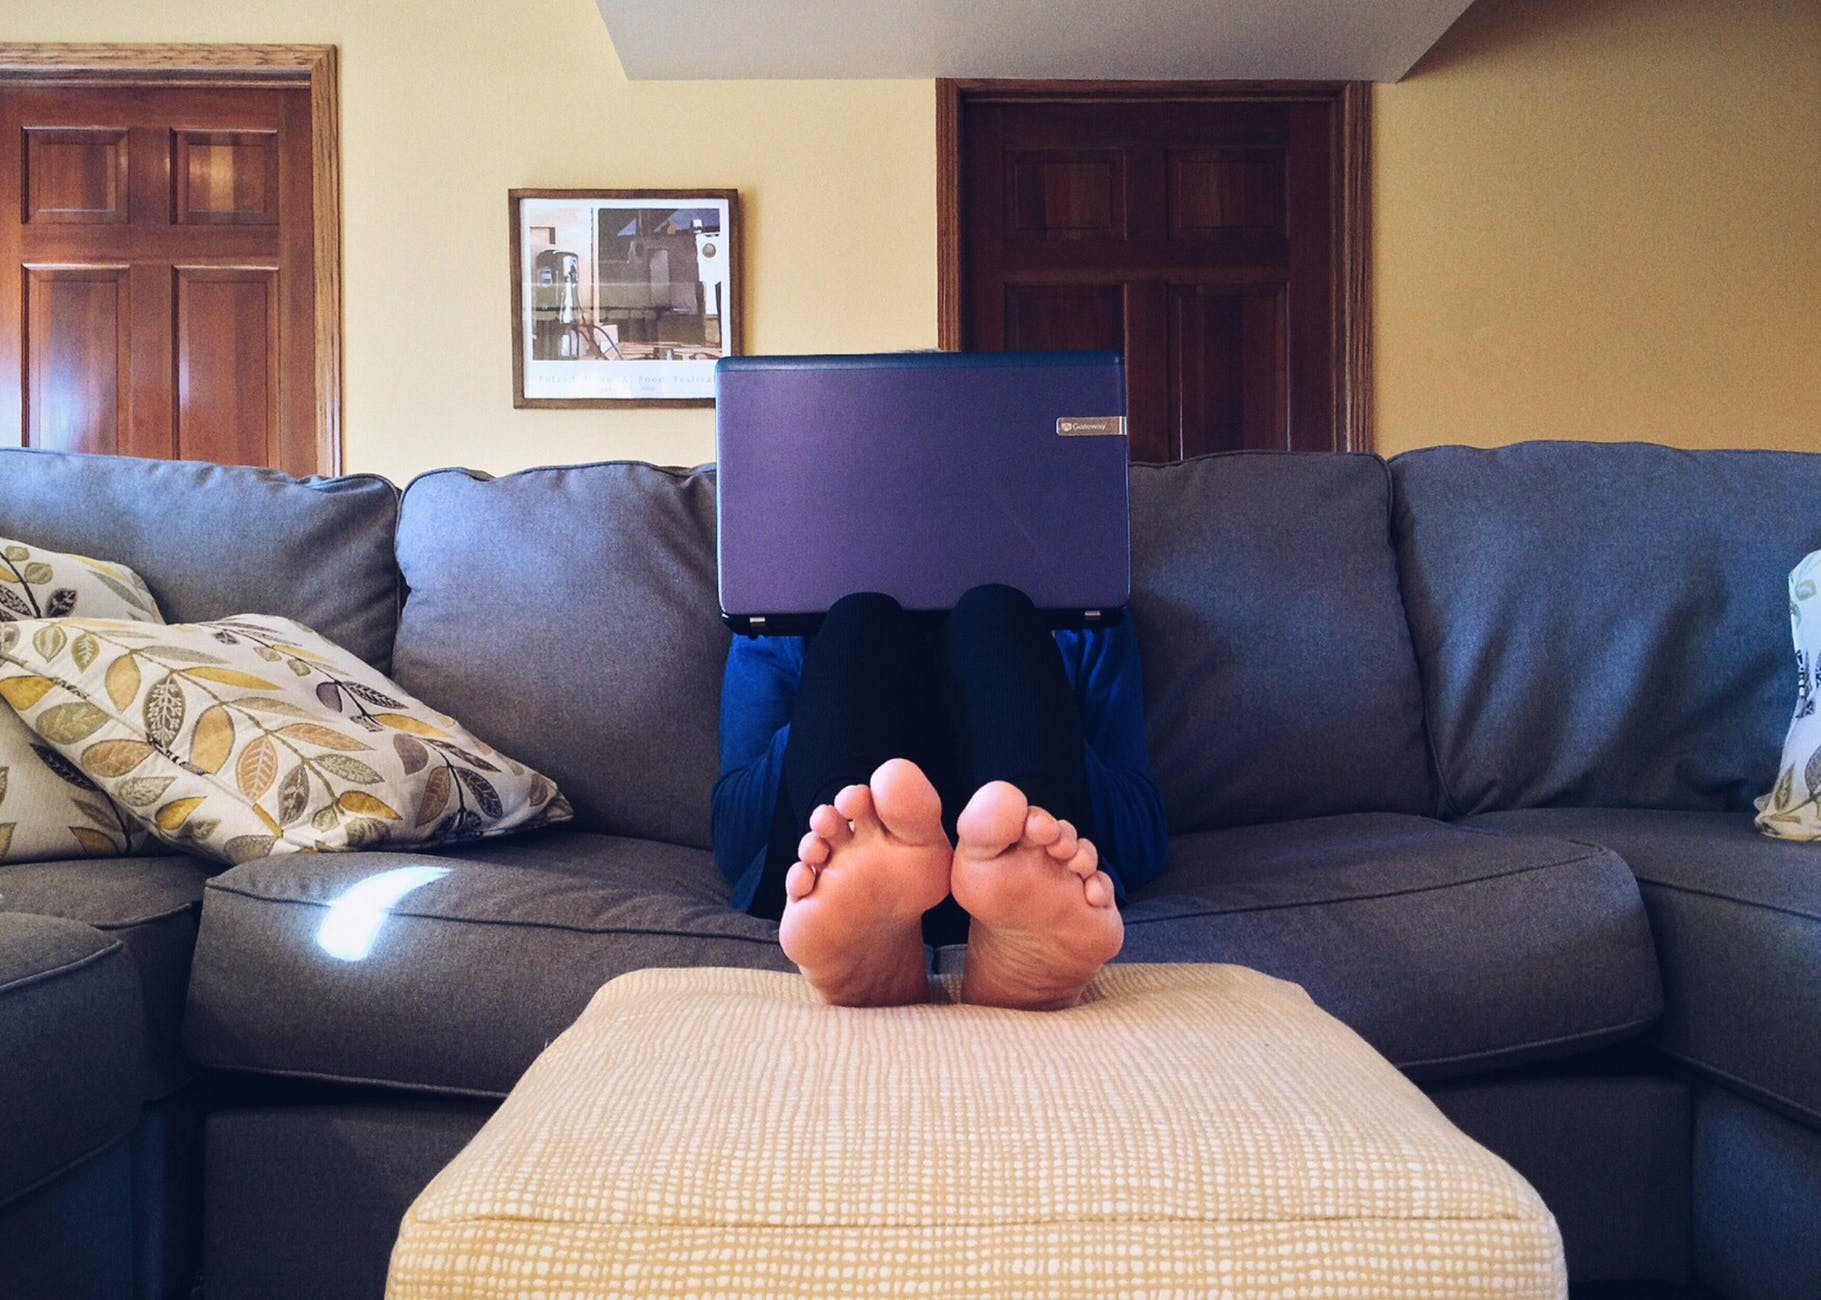 mistakes while working from home